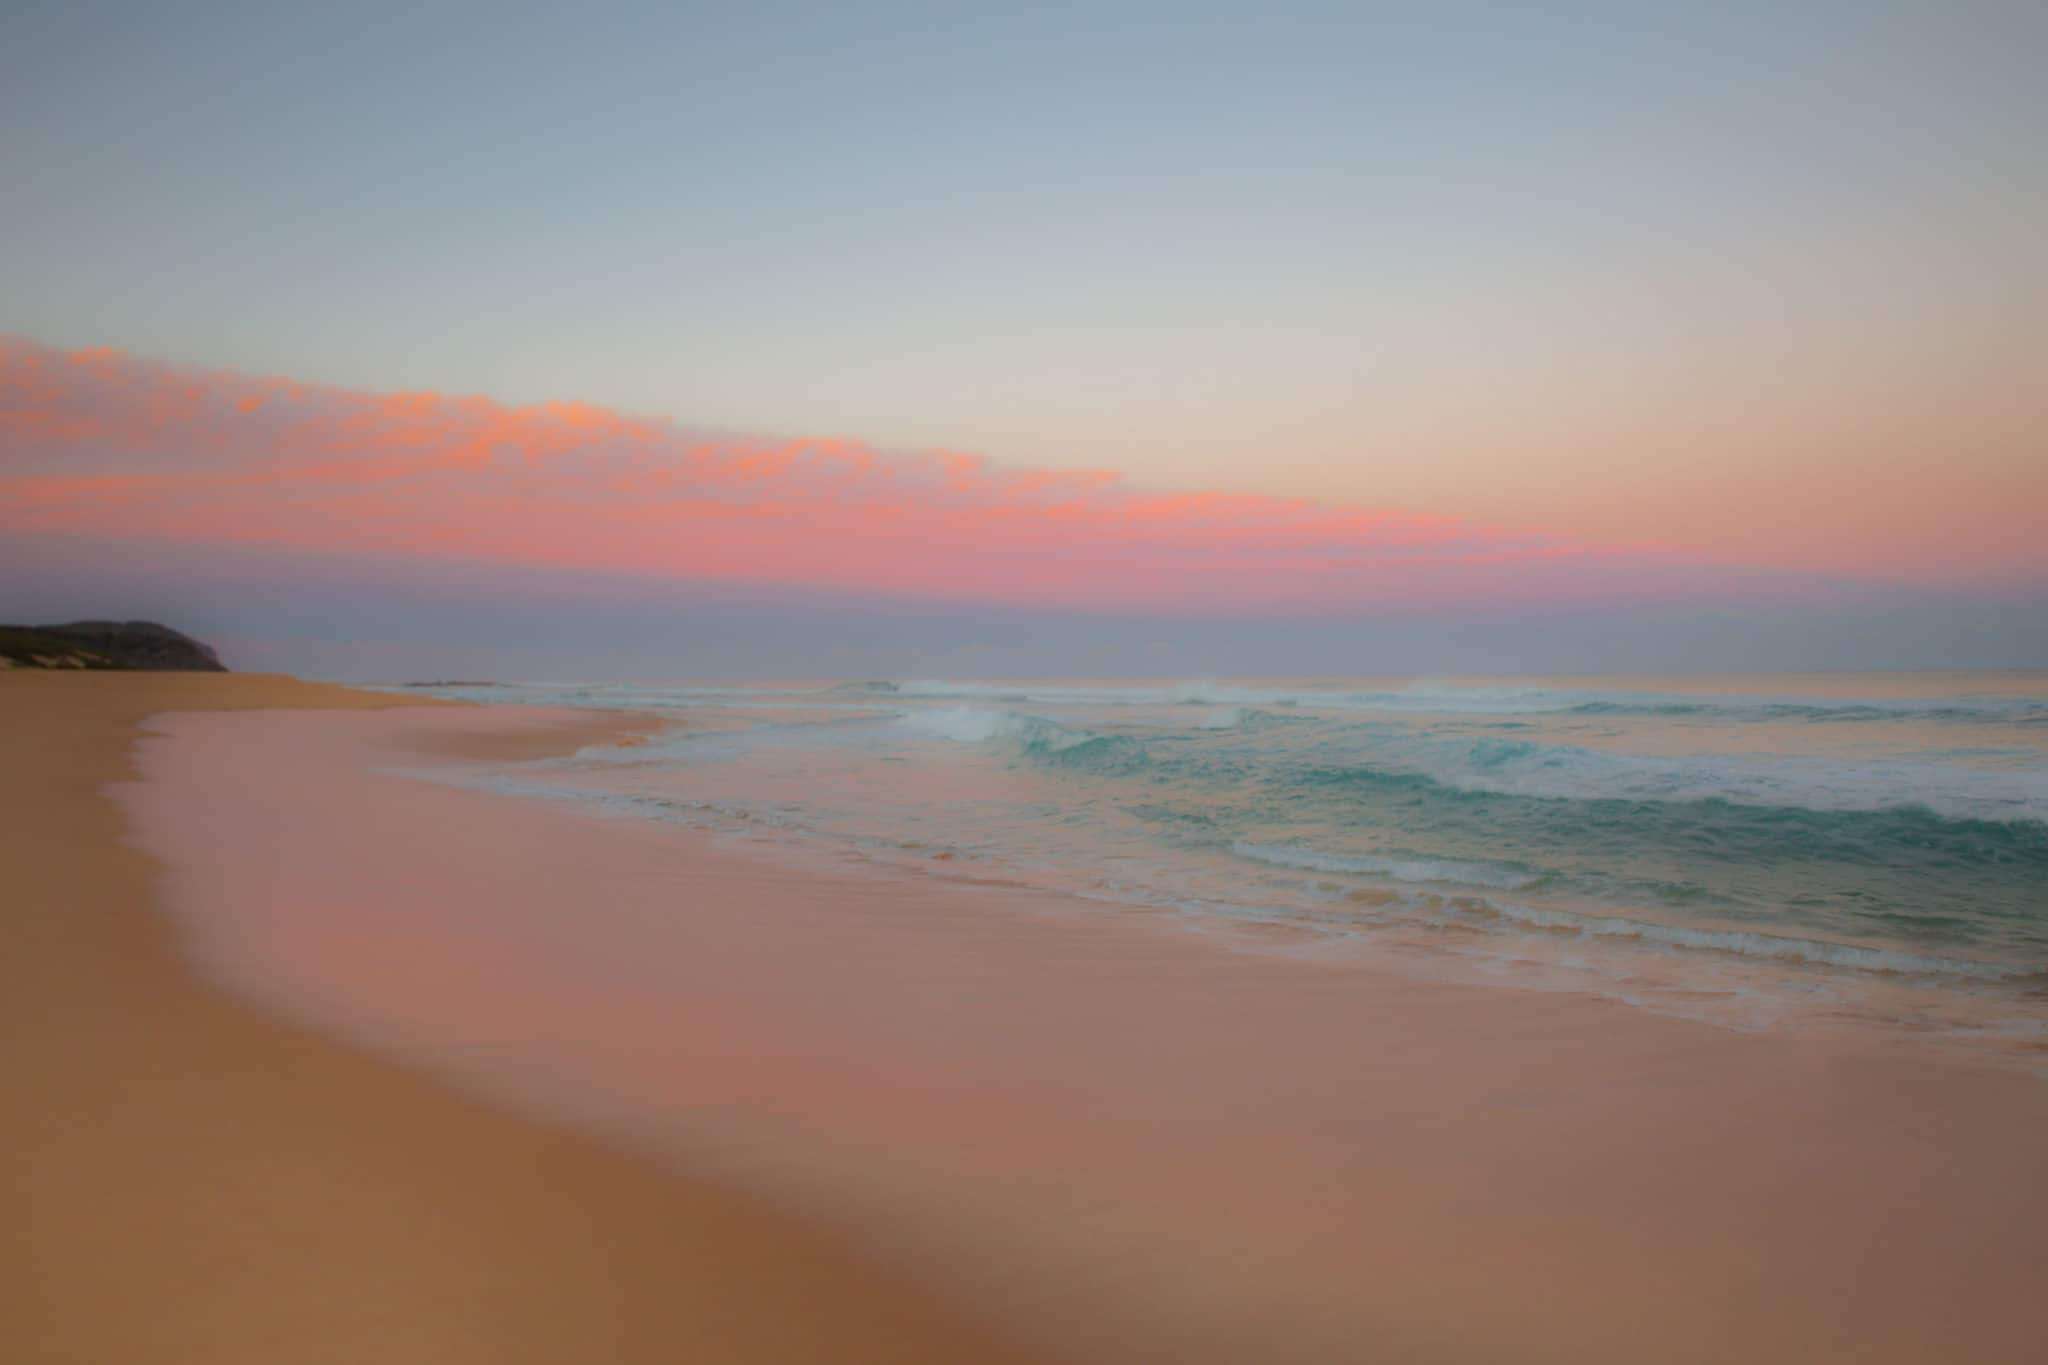 TravelwithMeraki-Sunrise-Wamberal Beach-New South Wales-Australia